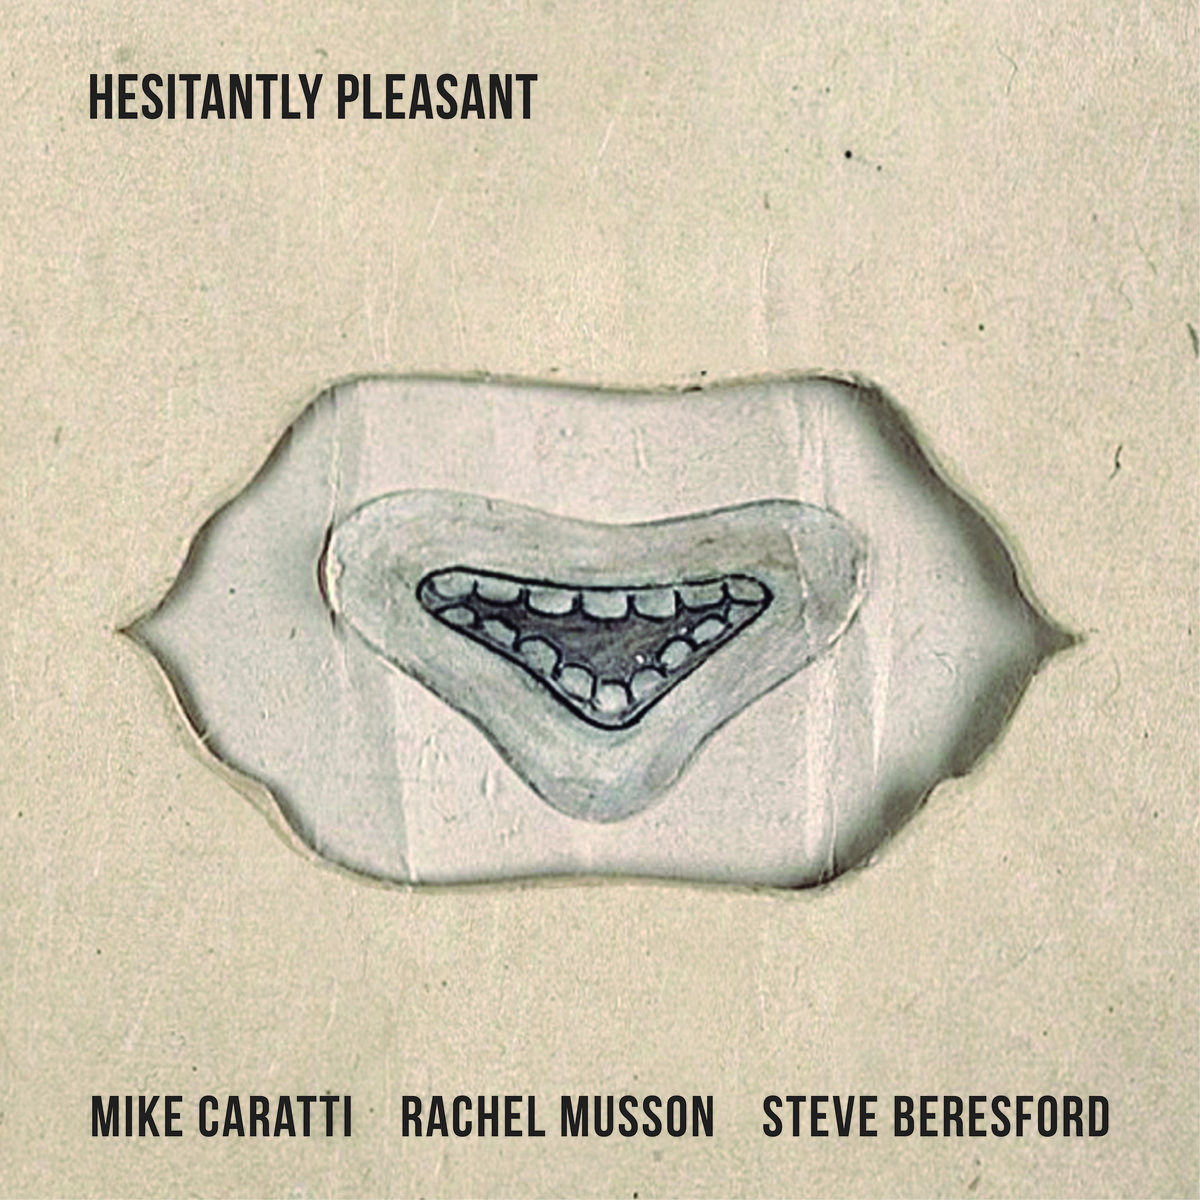 Hesitantly Pleasant by Mike Caratti · Rachel Musson · Steve Beresford